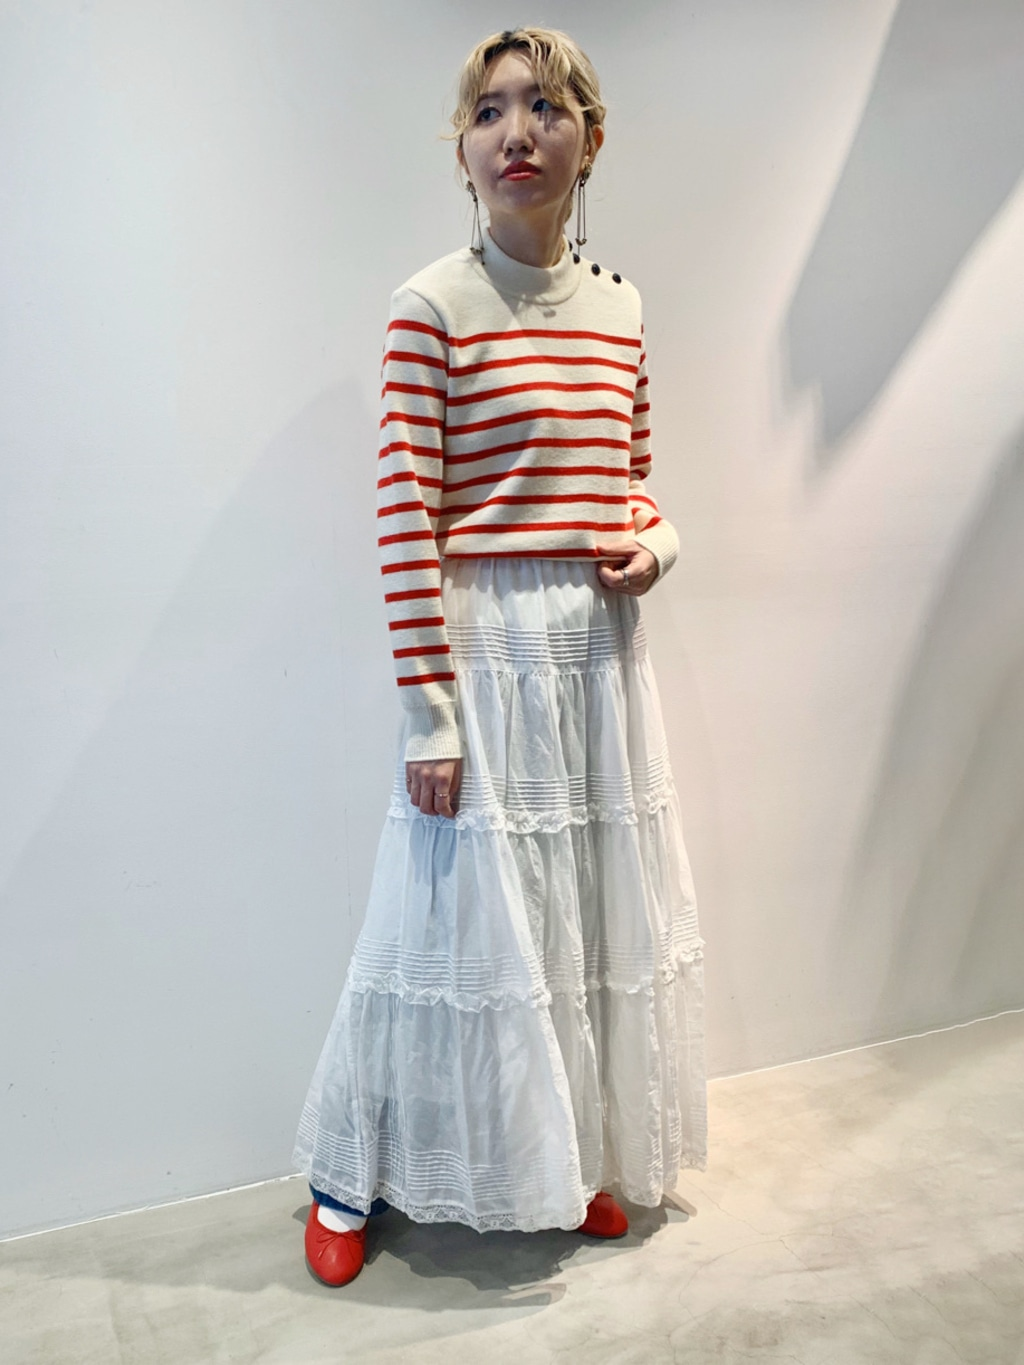 Dot and Stripes CHILD WOMAN ラフォーレ原宿 身長:160cm 2020.11.26